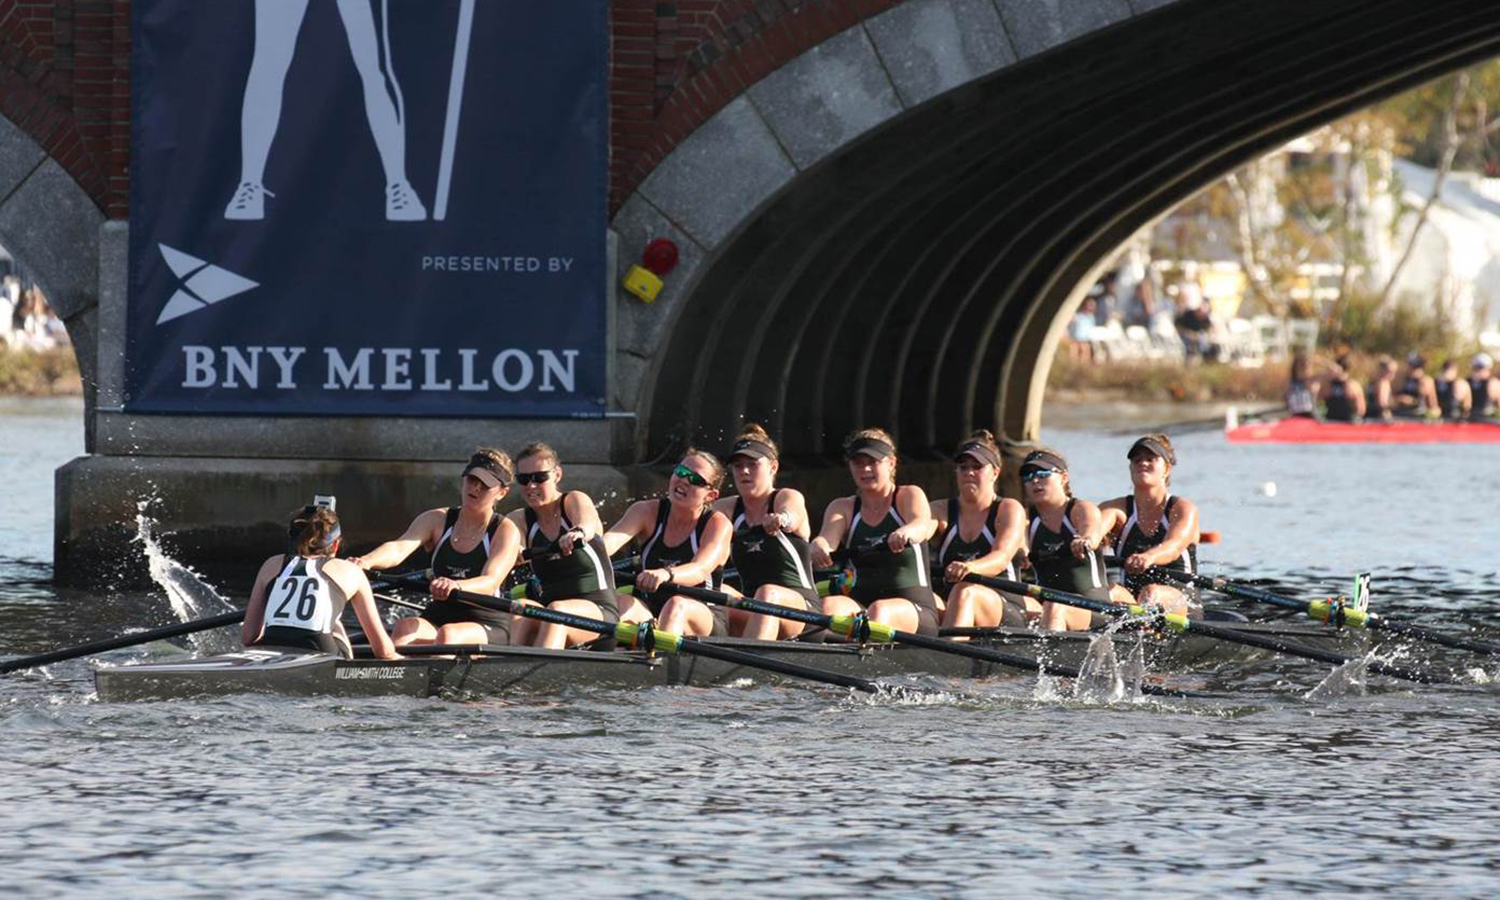 The William Smith rowing team competes in the Head of the Charles Regatta, finishing 12th of 26 teams.